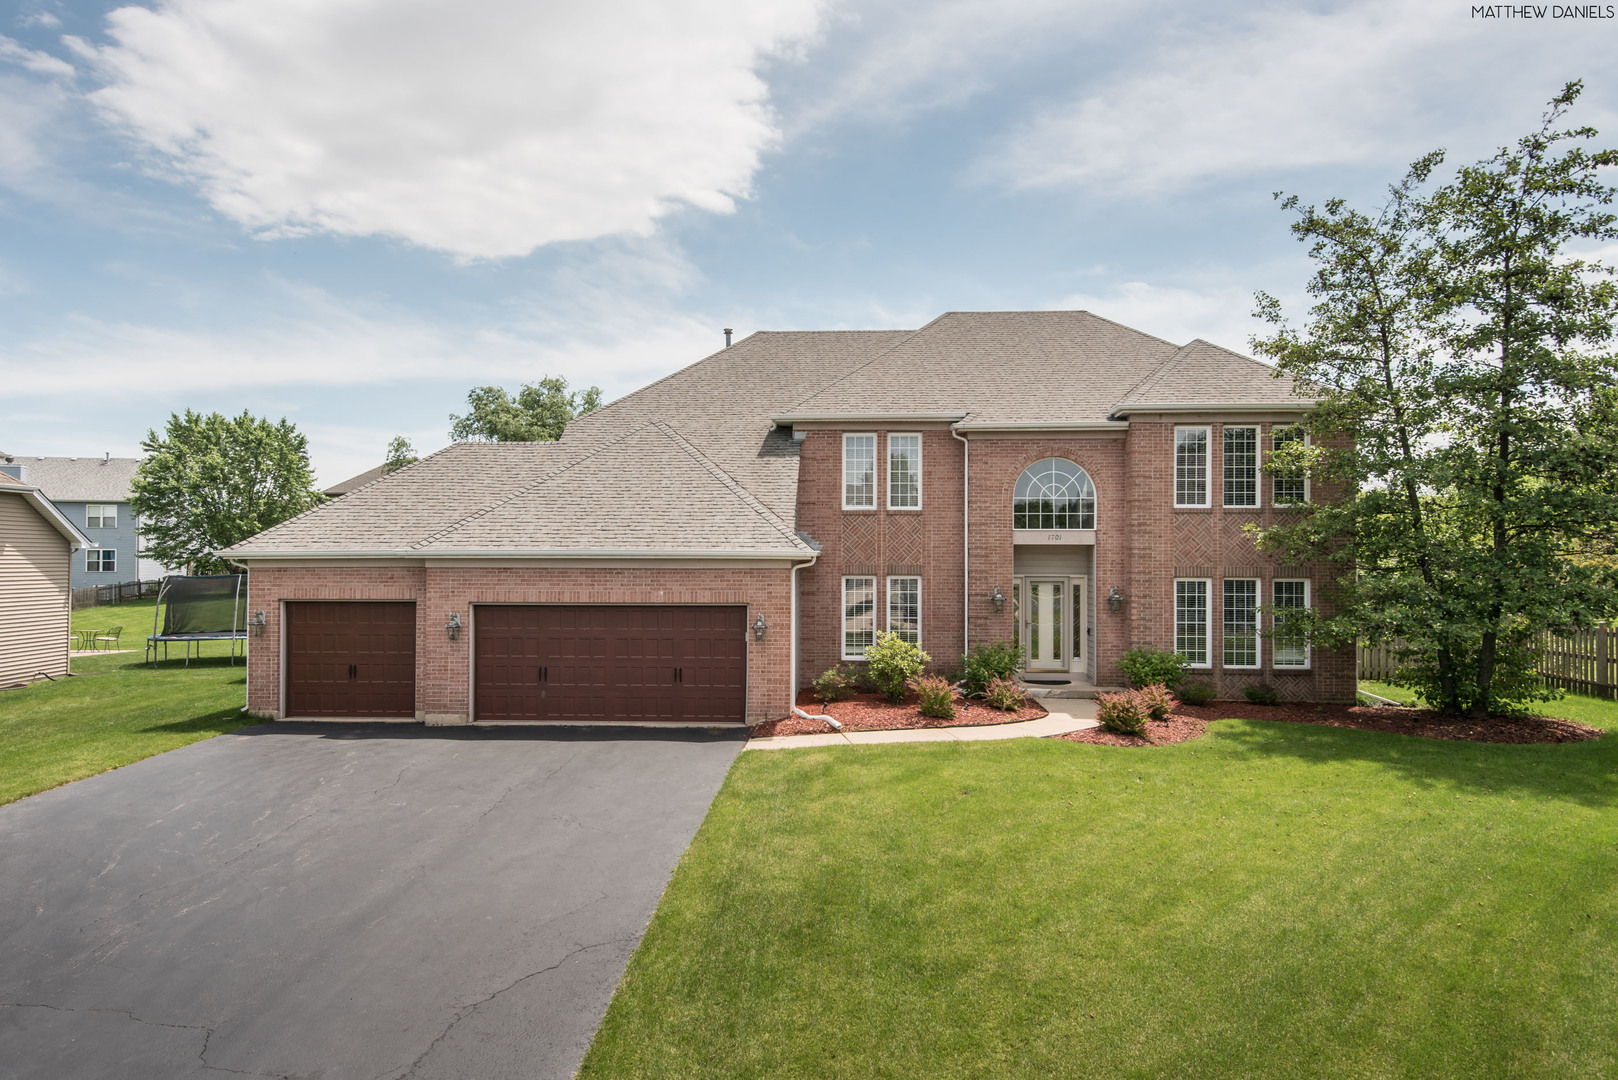 Photo for 1701 Cambria Lane, Algonquin, IL 60102 (MLS # 10578047)